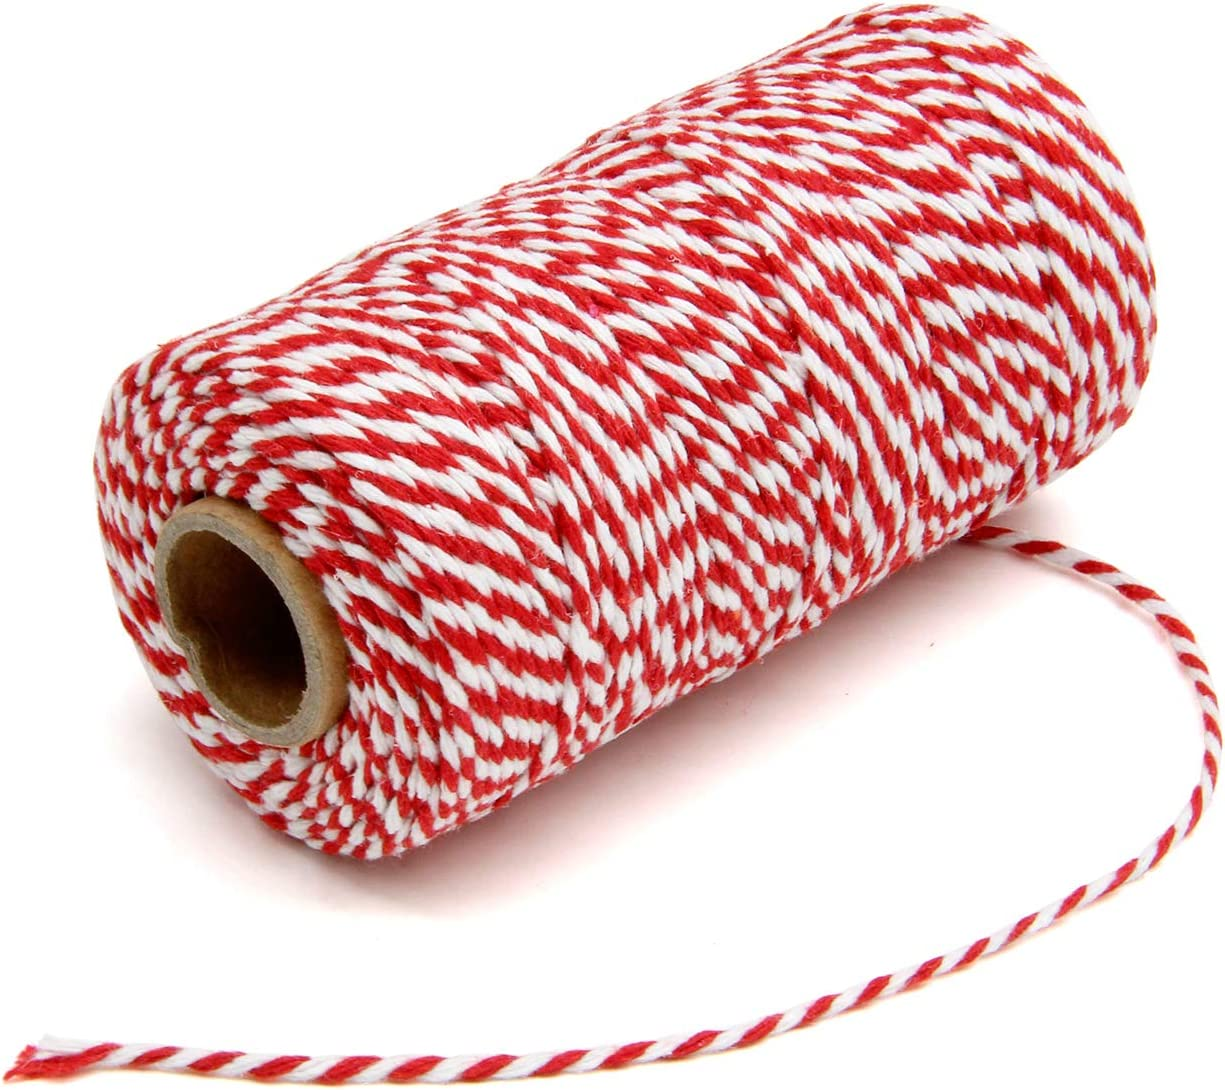 300 Feet Red and White Twine and 100 PCS Gift Tags Valentine/'s Day Heart Shape Kraft Paper Tags Price Tags by Blisstime red-1